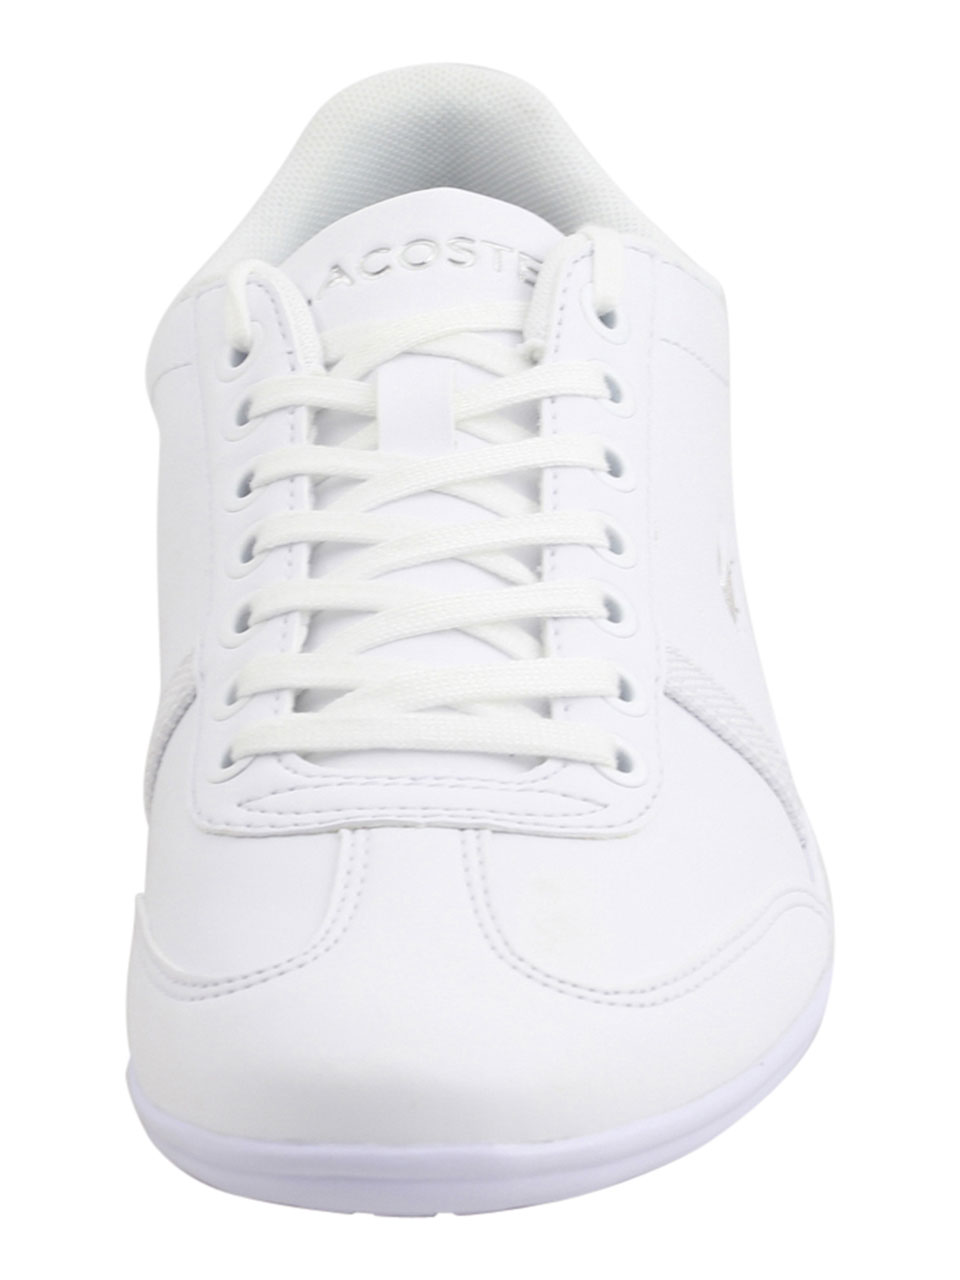 Lacoste-Men-039-s-Misano-Sport-118-Sneakers-Shoes thumbnail 20